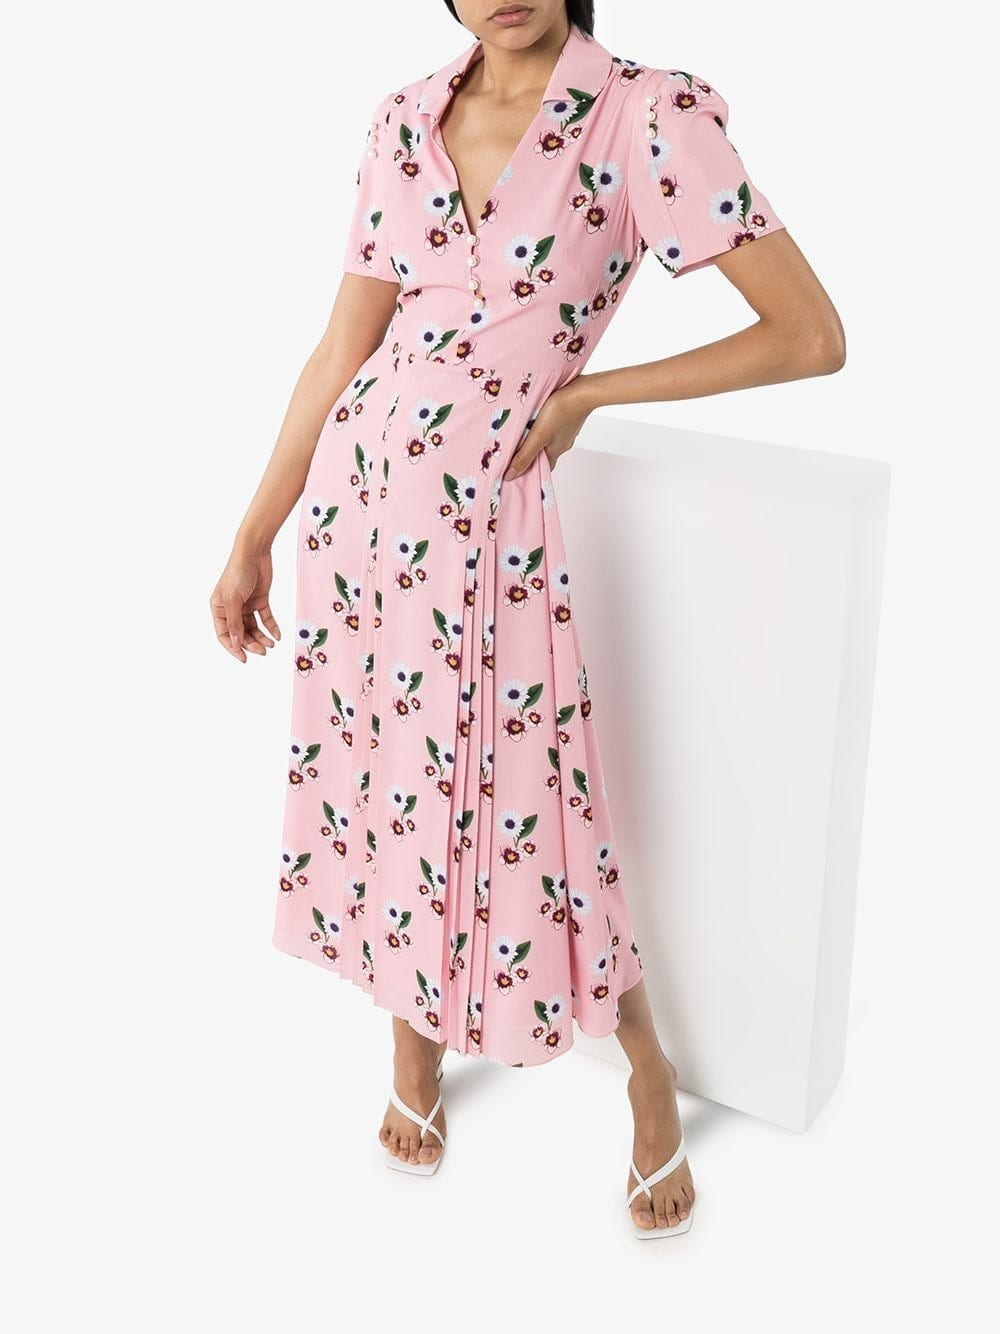 BORGO DE NOR Adelaide Floral Print Midi Dress